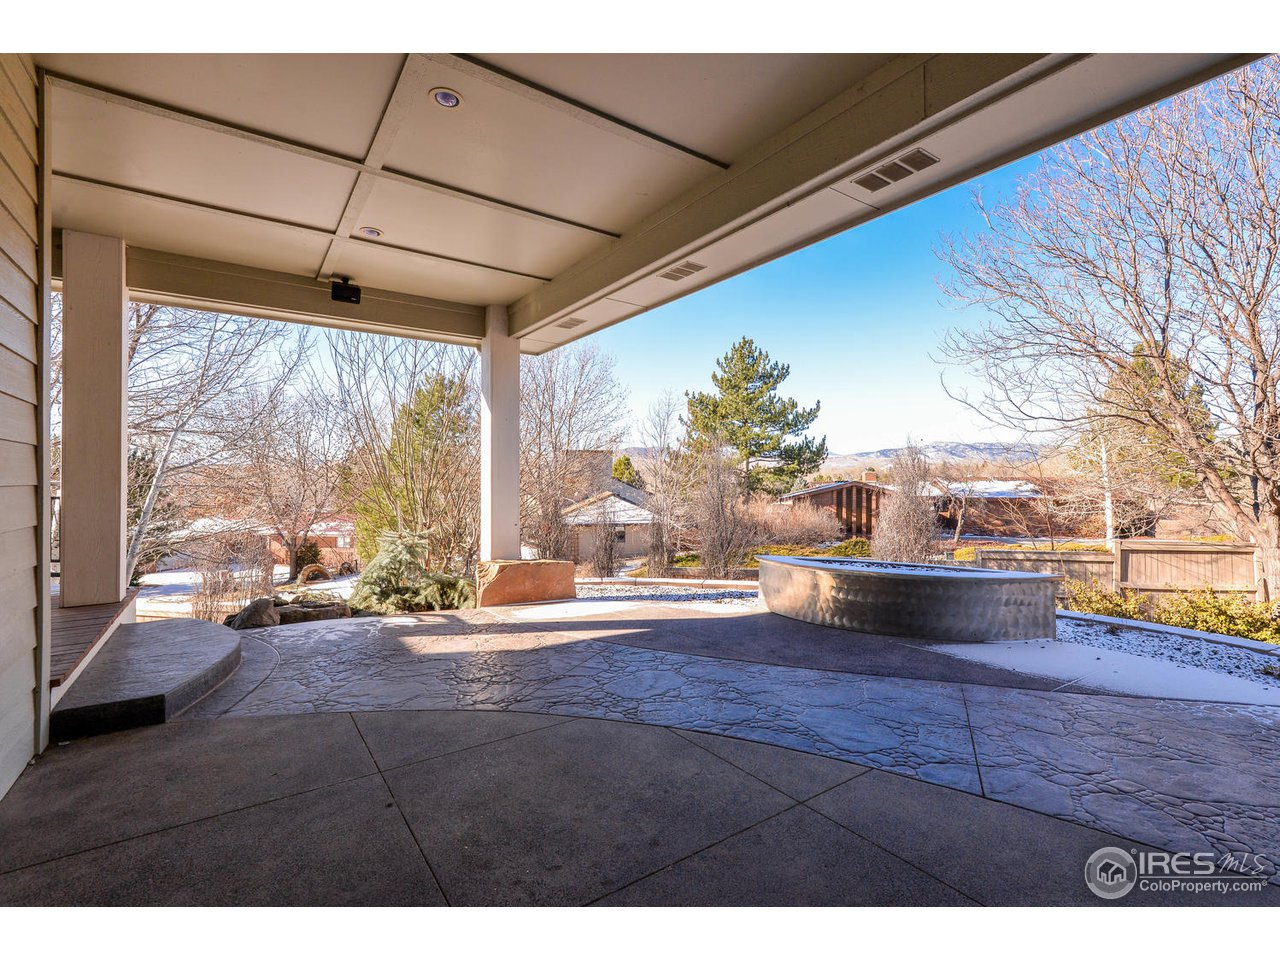 Gas Fire Pit and Covered Deck